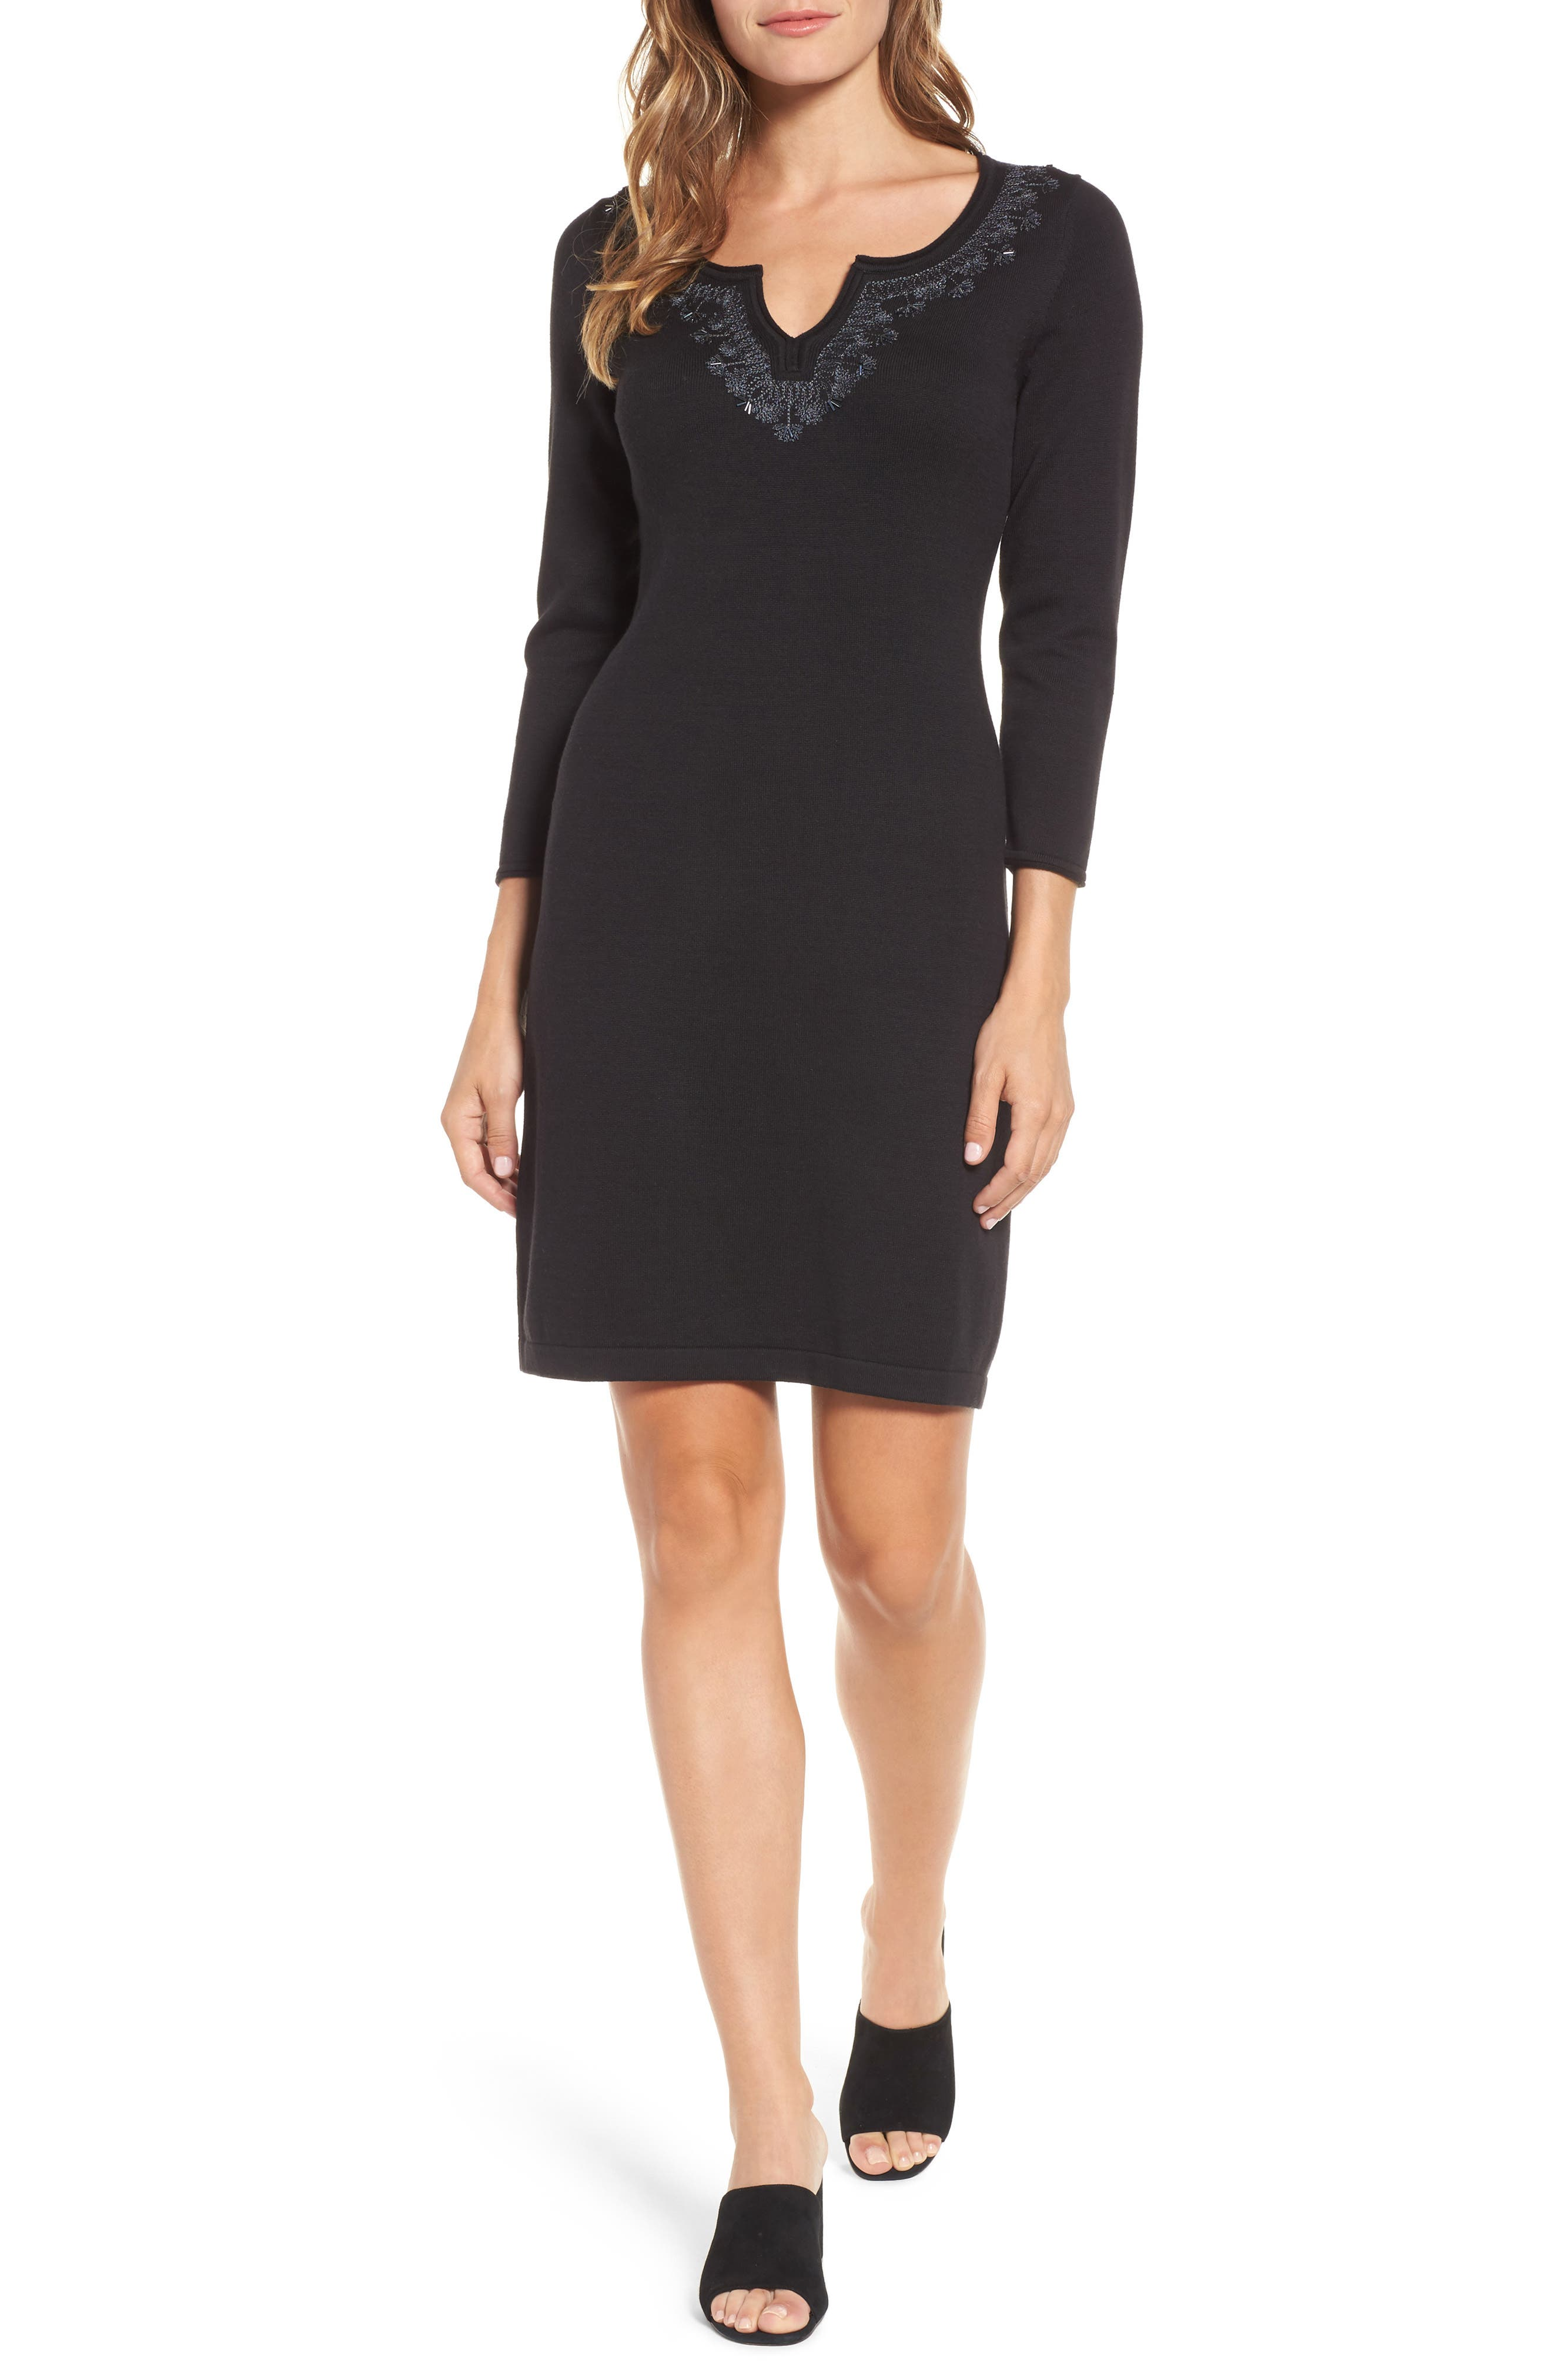 Pickford Embellished Sweater Dress,                             Main thumbnail 1, color,                             BLACK